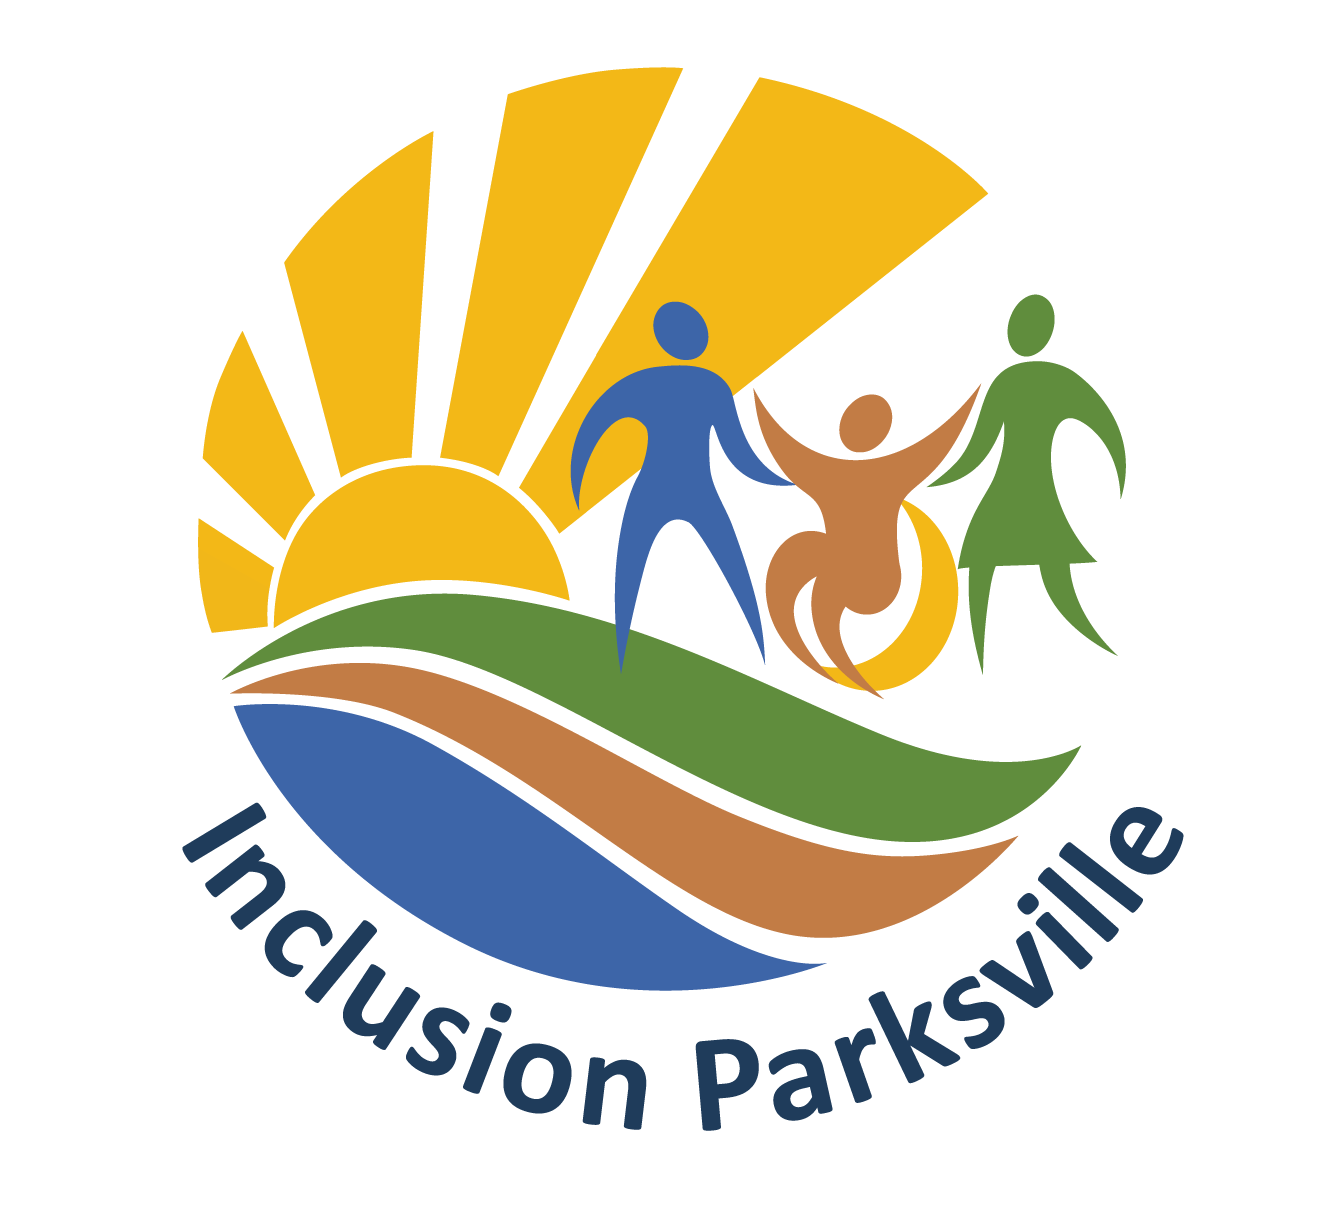 inclusion-parksville-logo-color.png